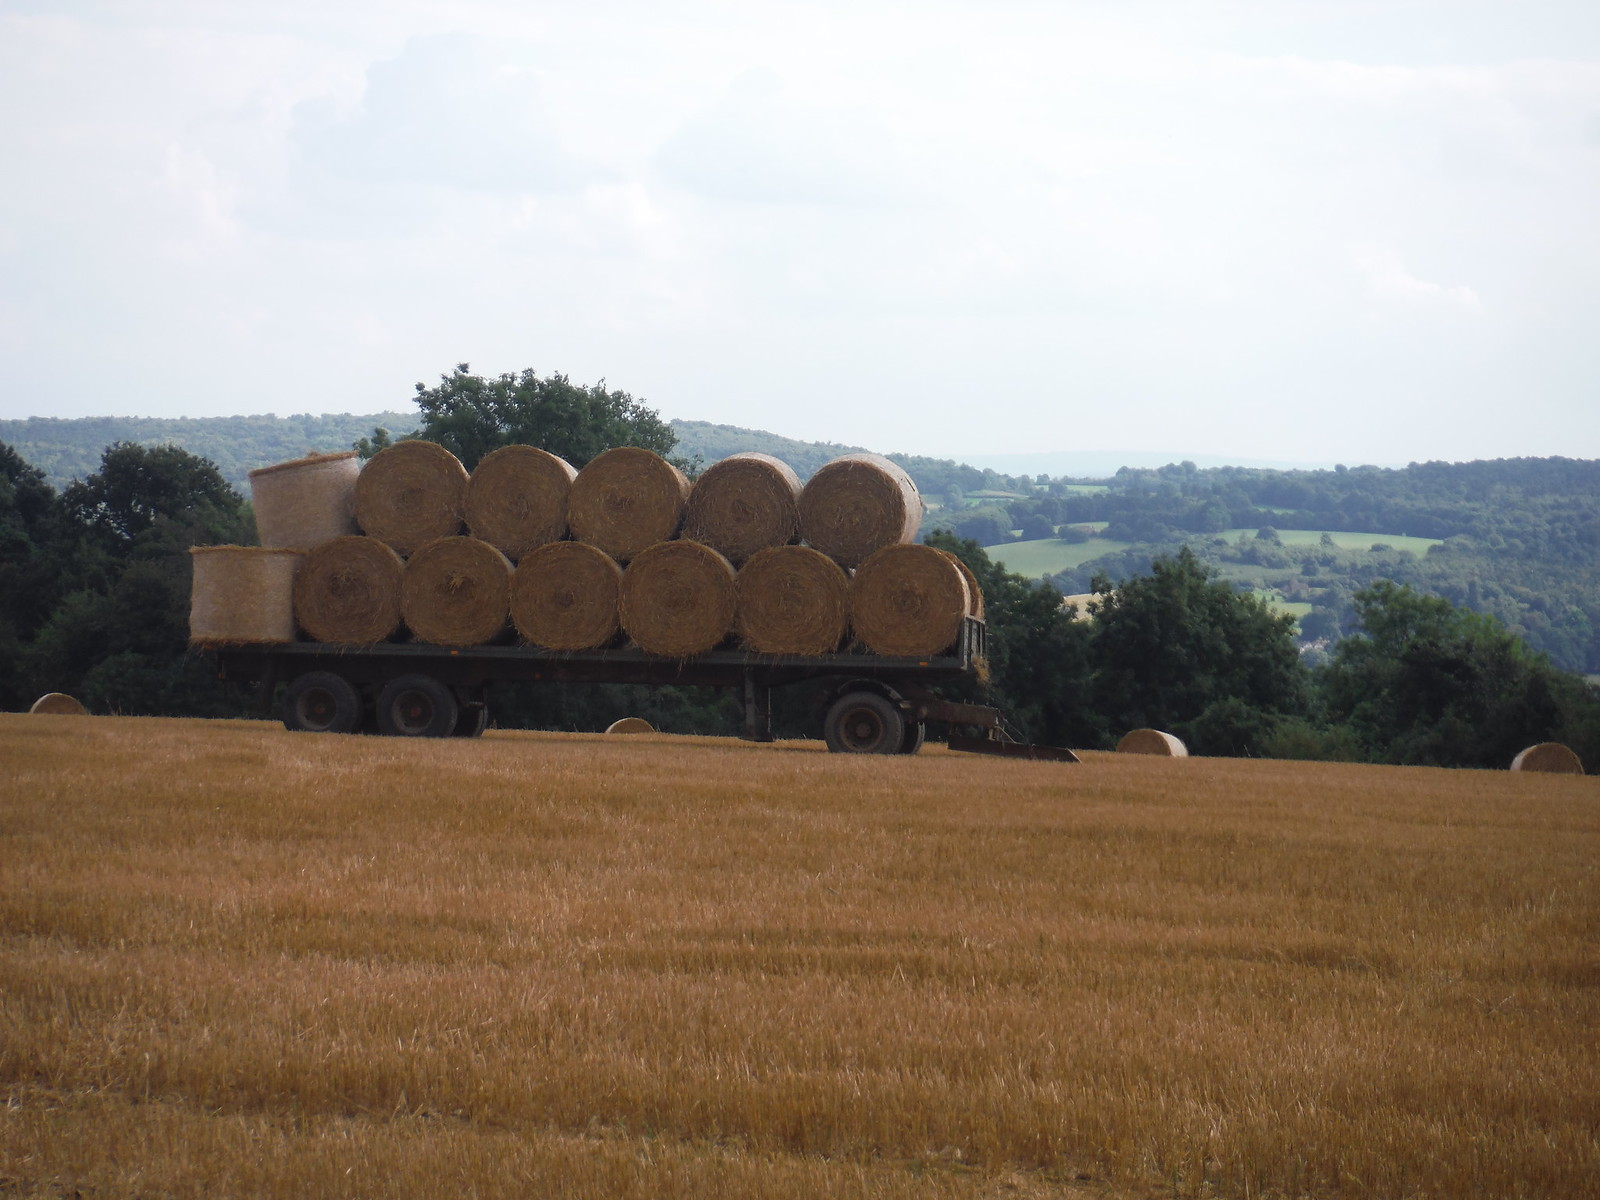 Bales with Views SWC Walk 111 Caterham to Knockholt (North Downs Way)